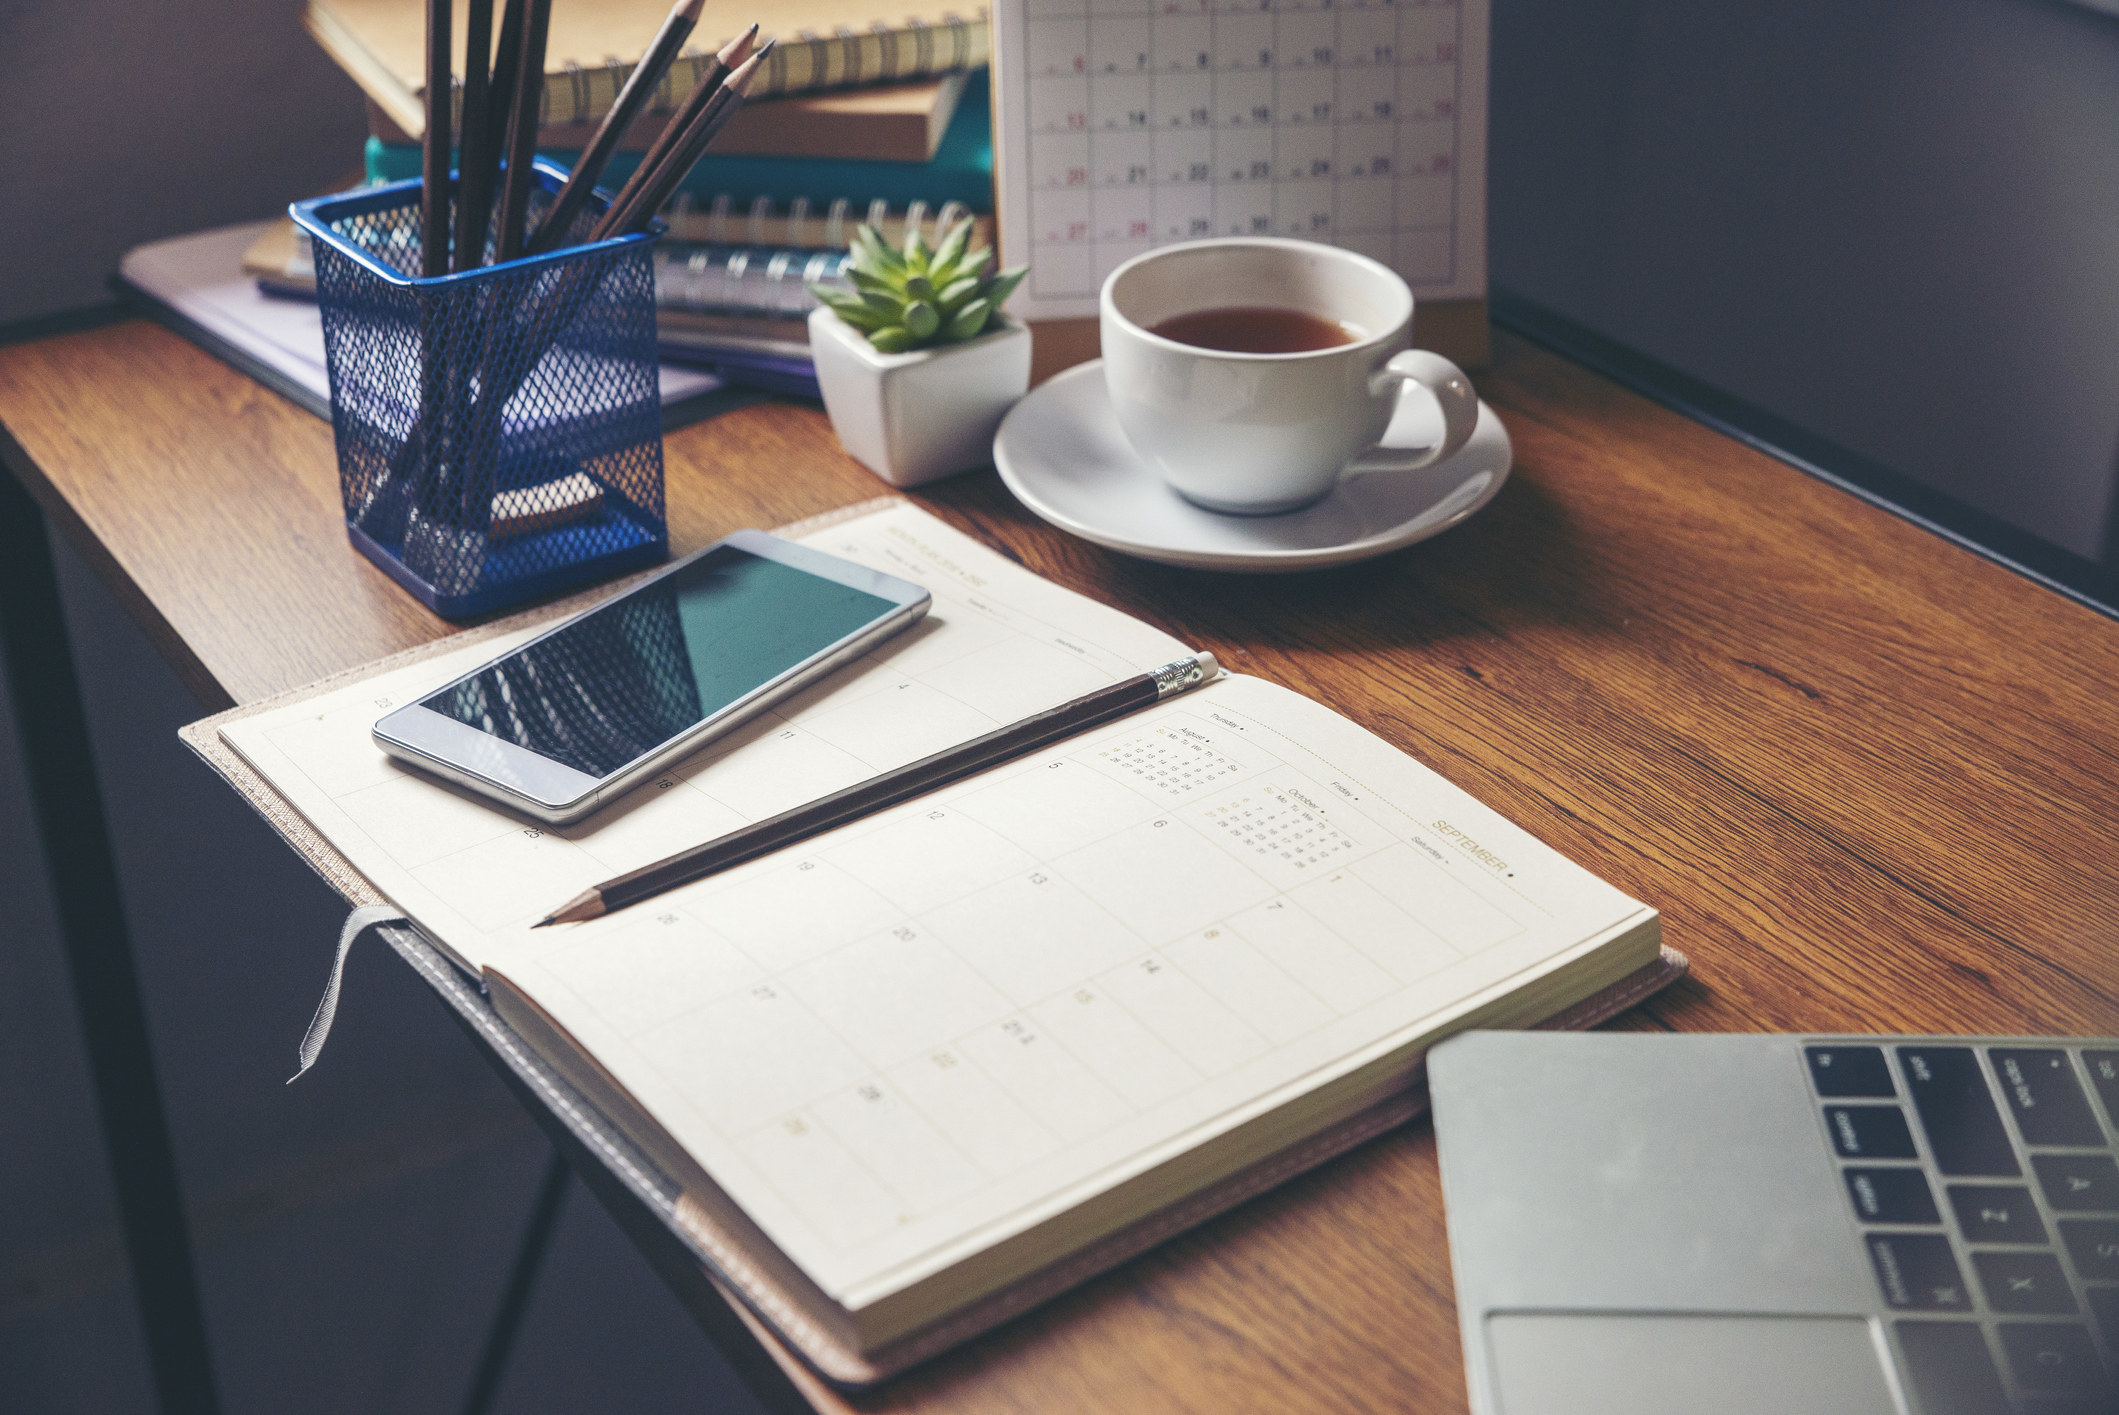 A desk with an open calendar and cell phone set on top of it.